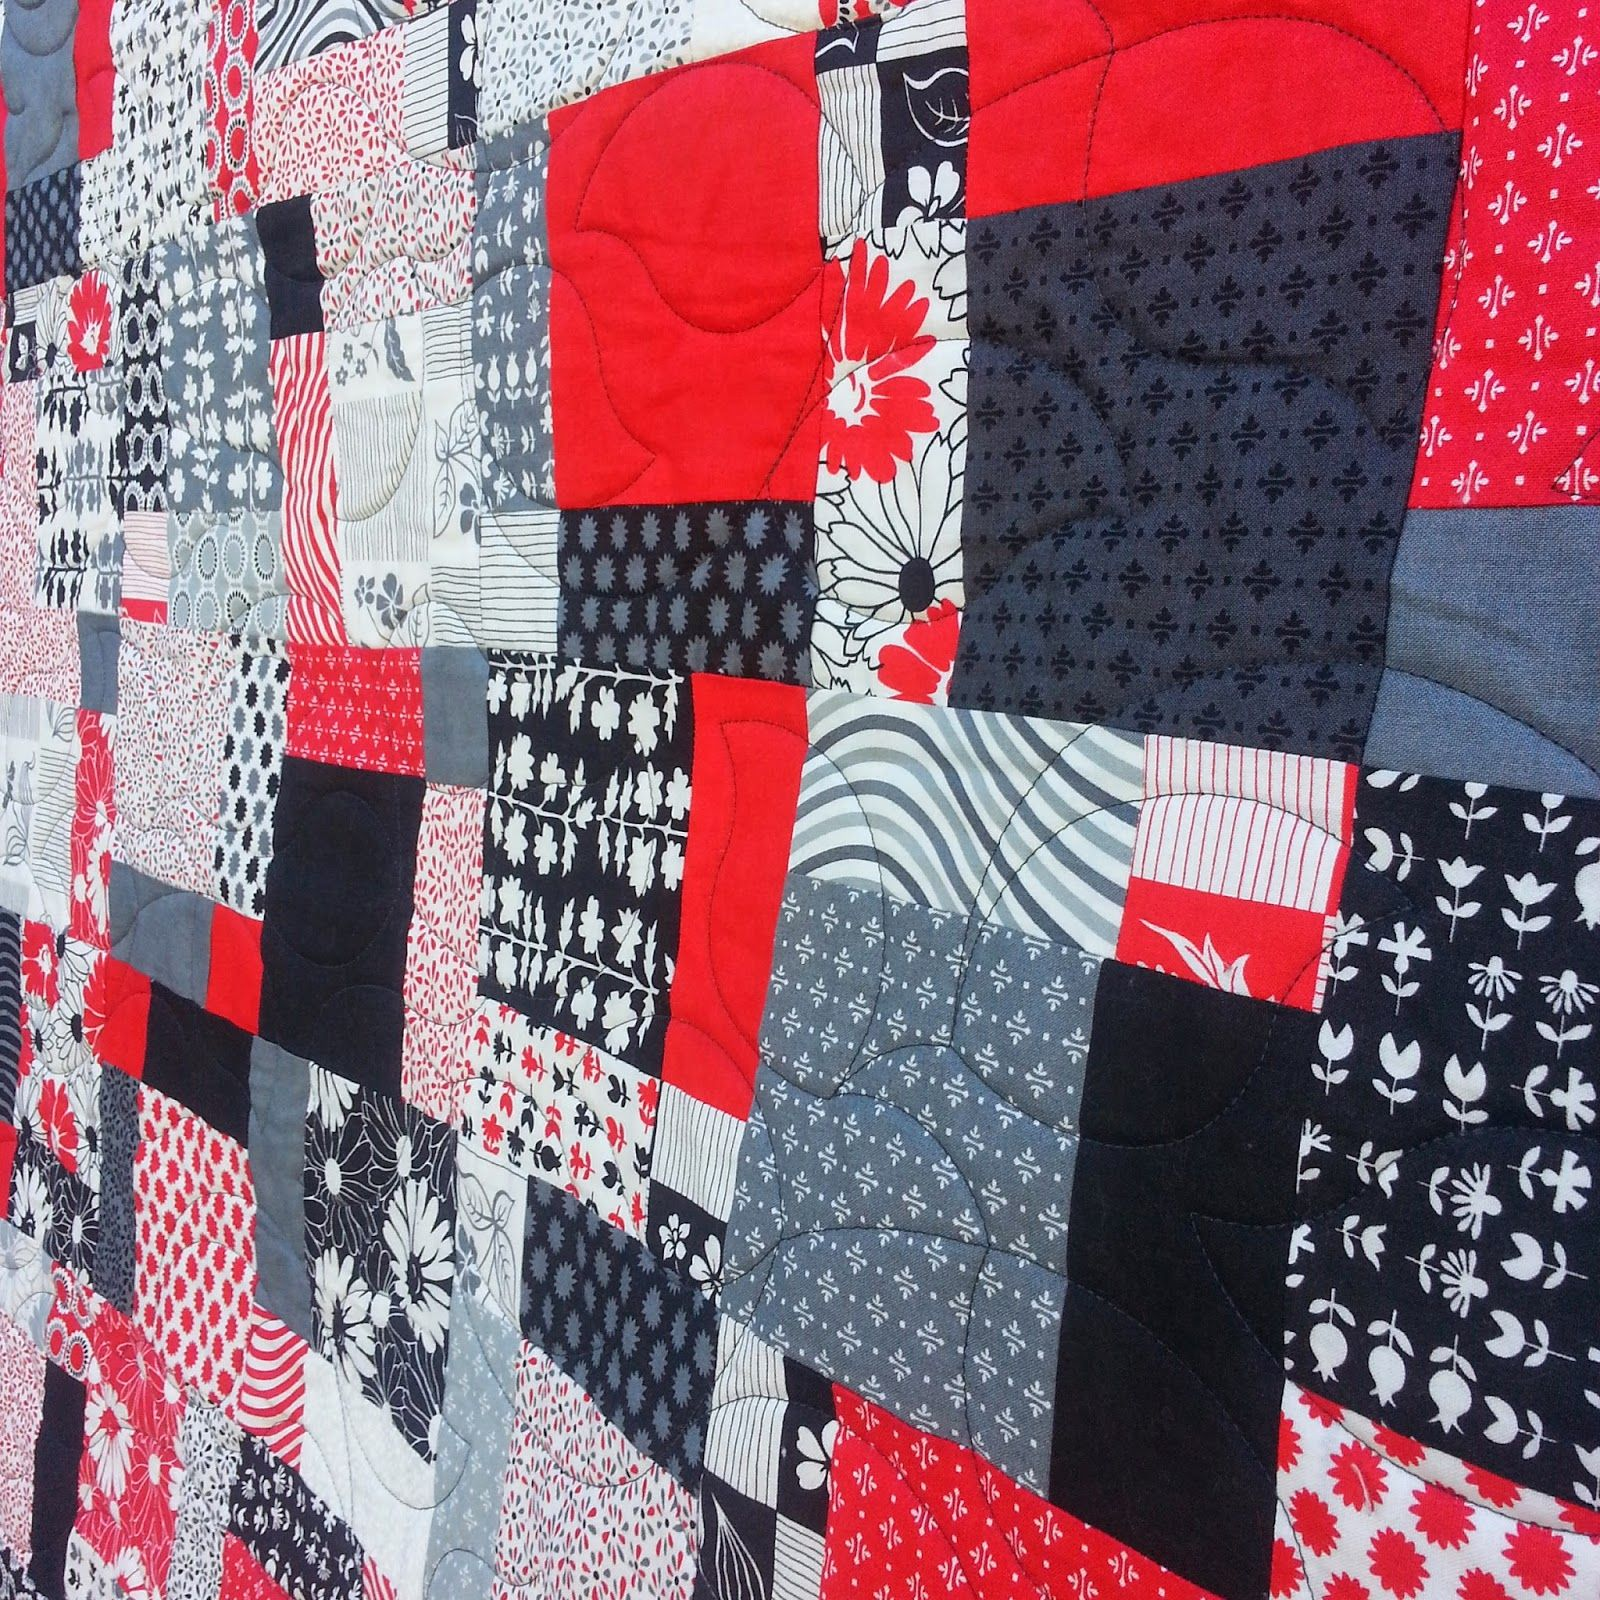 Darvanalee Designs Long Arm Quilting and More Black white and red Quilt 60